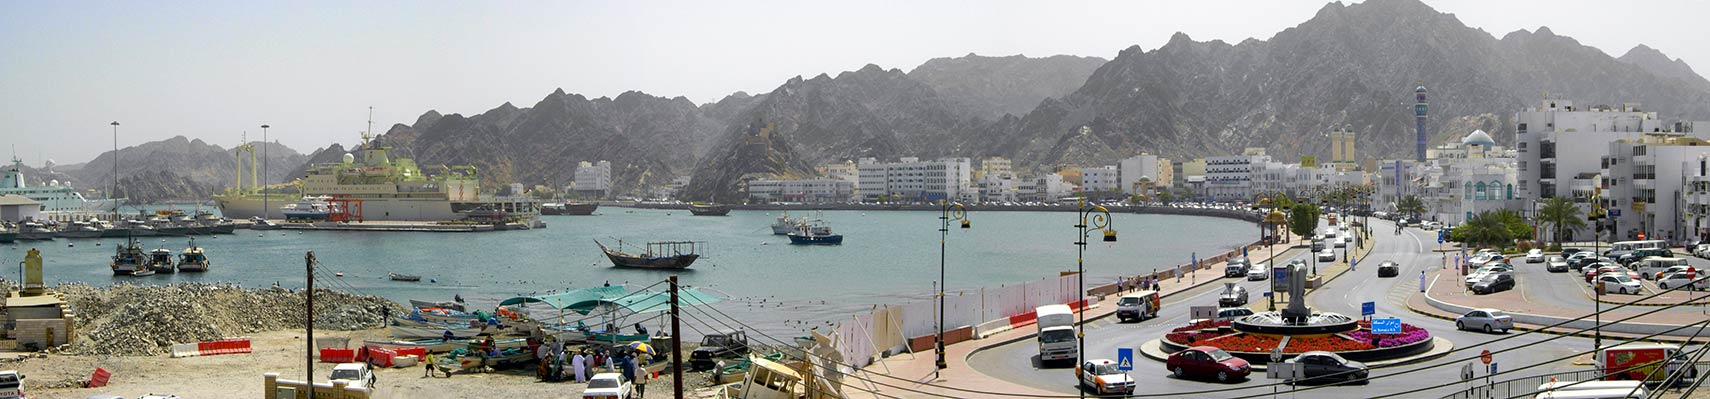 Muscat with the port and corniche